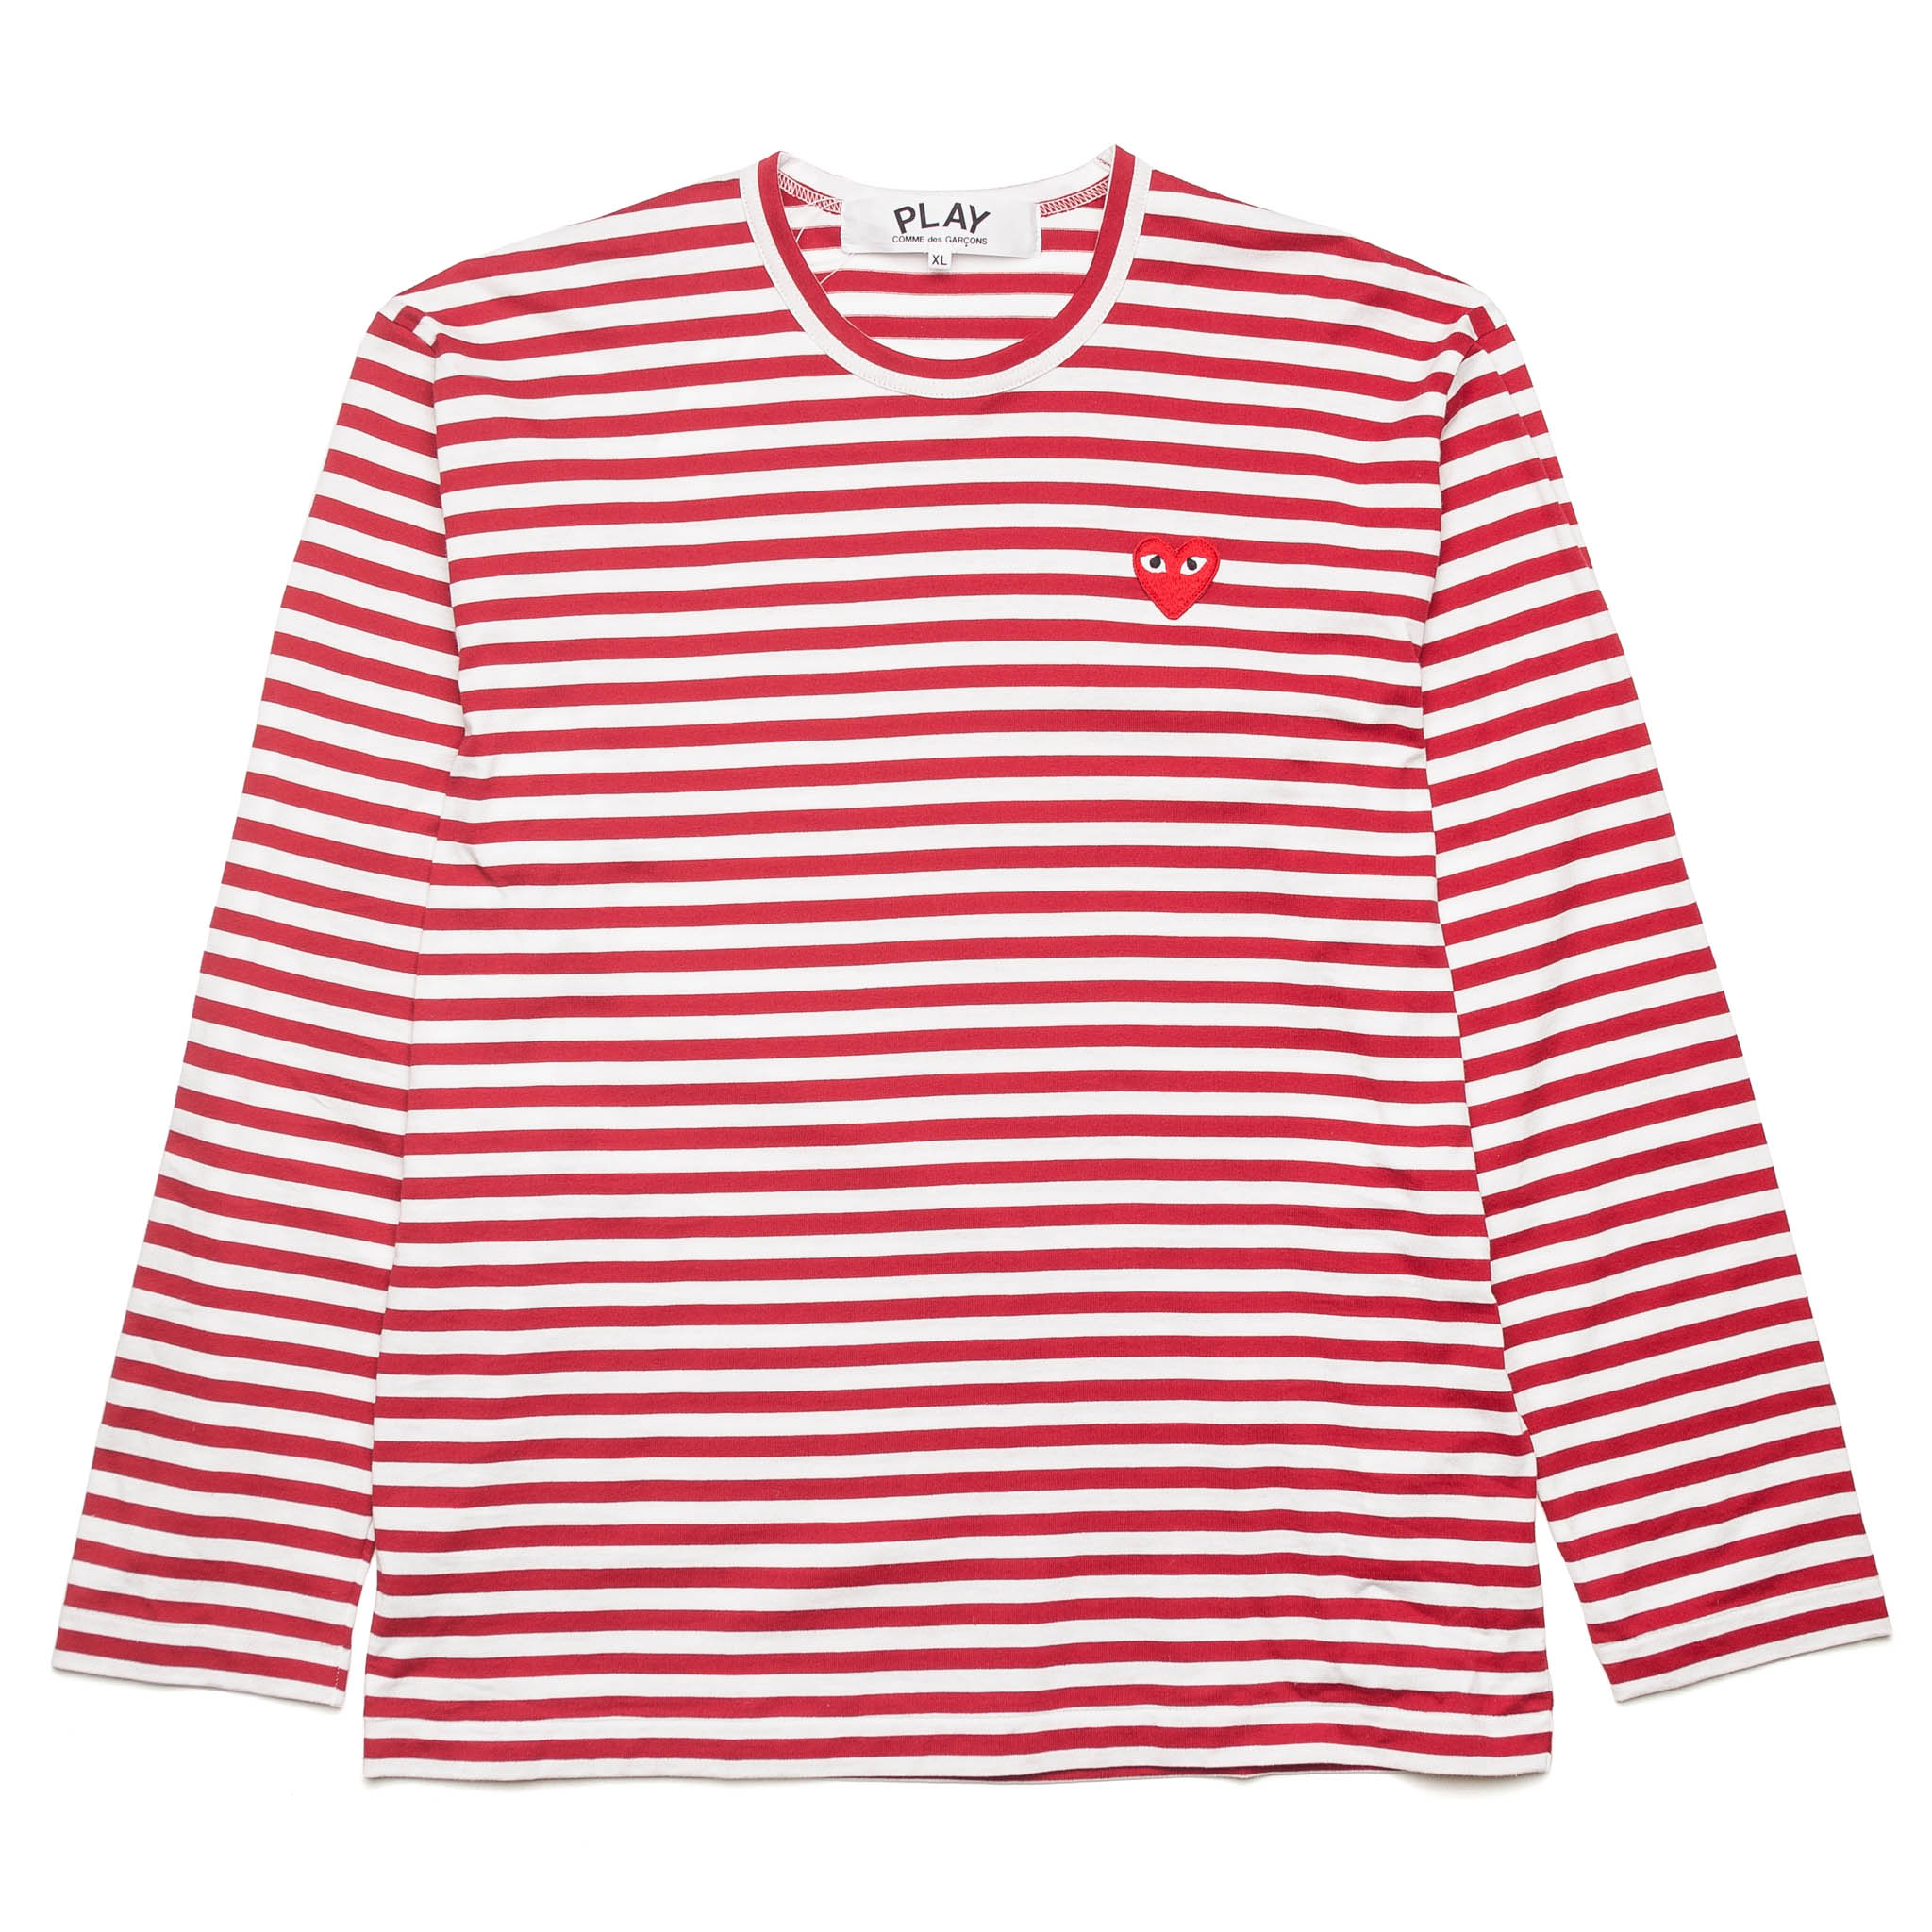 HEART LOGO STRIPED L/S Tee AZ-T164-051-4 Red